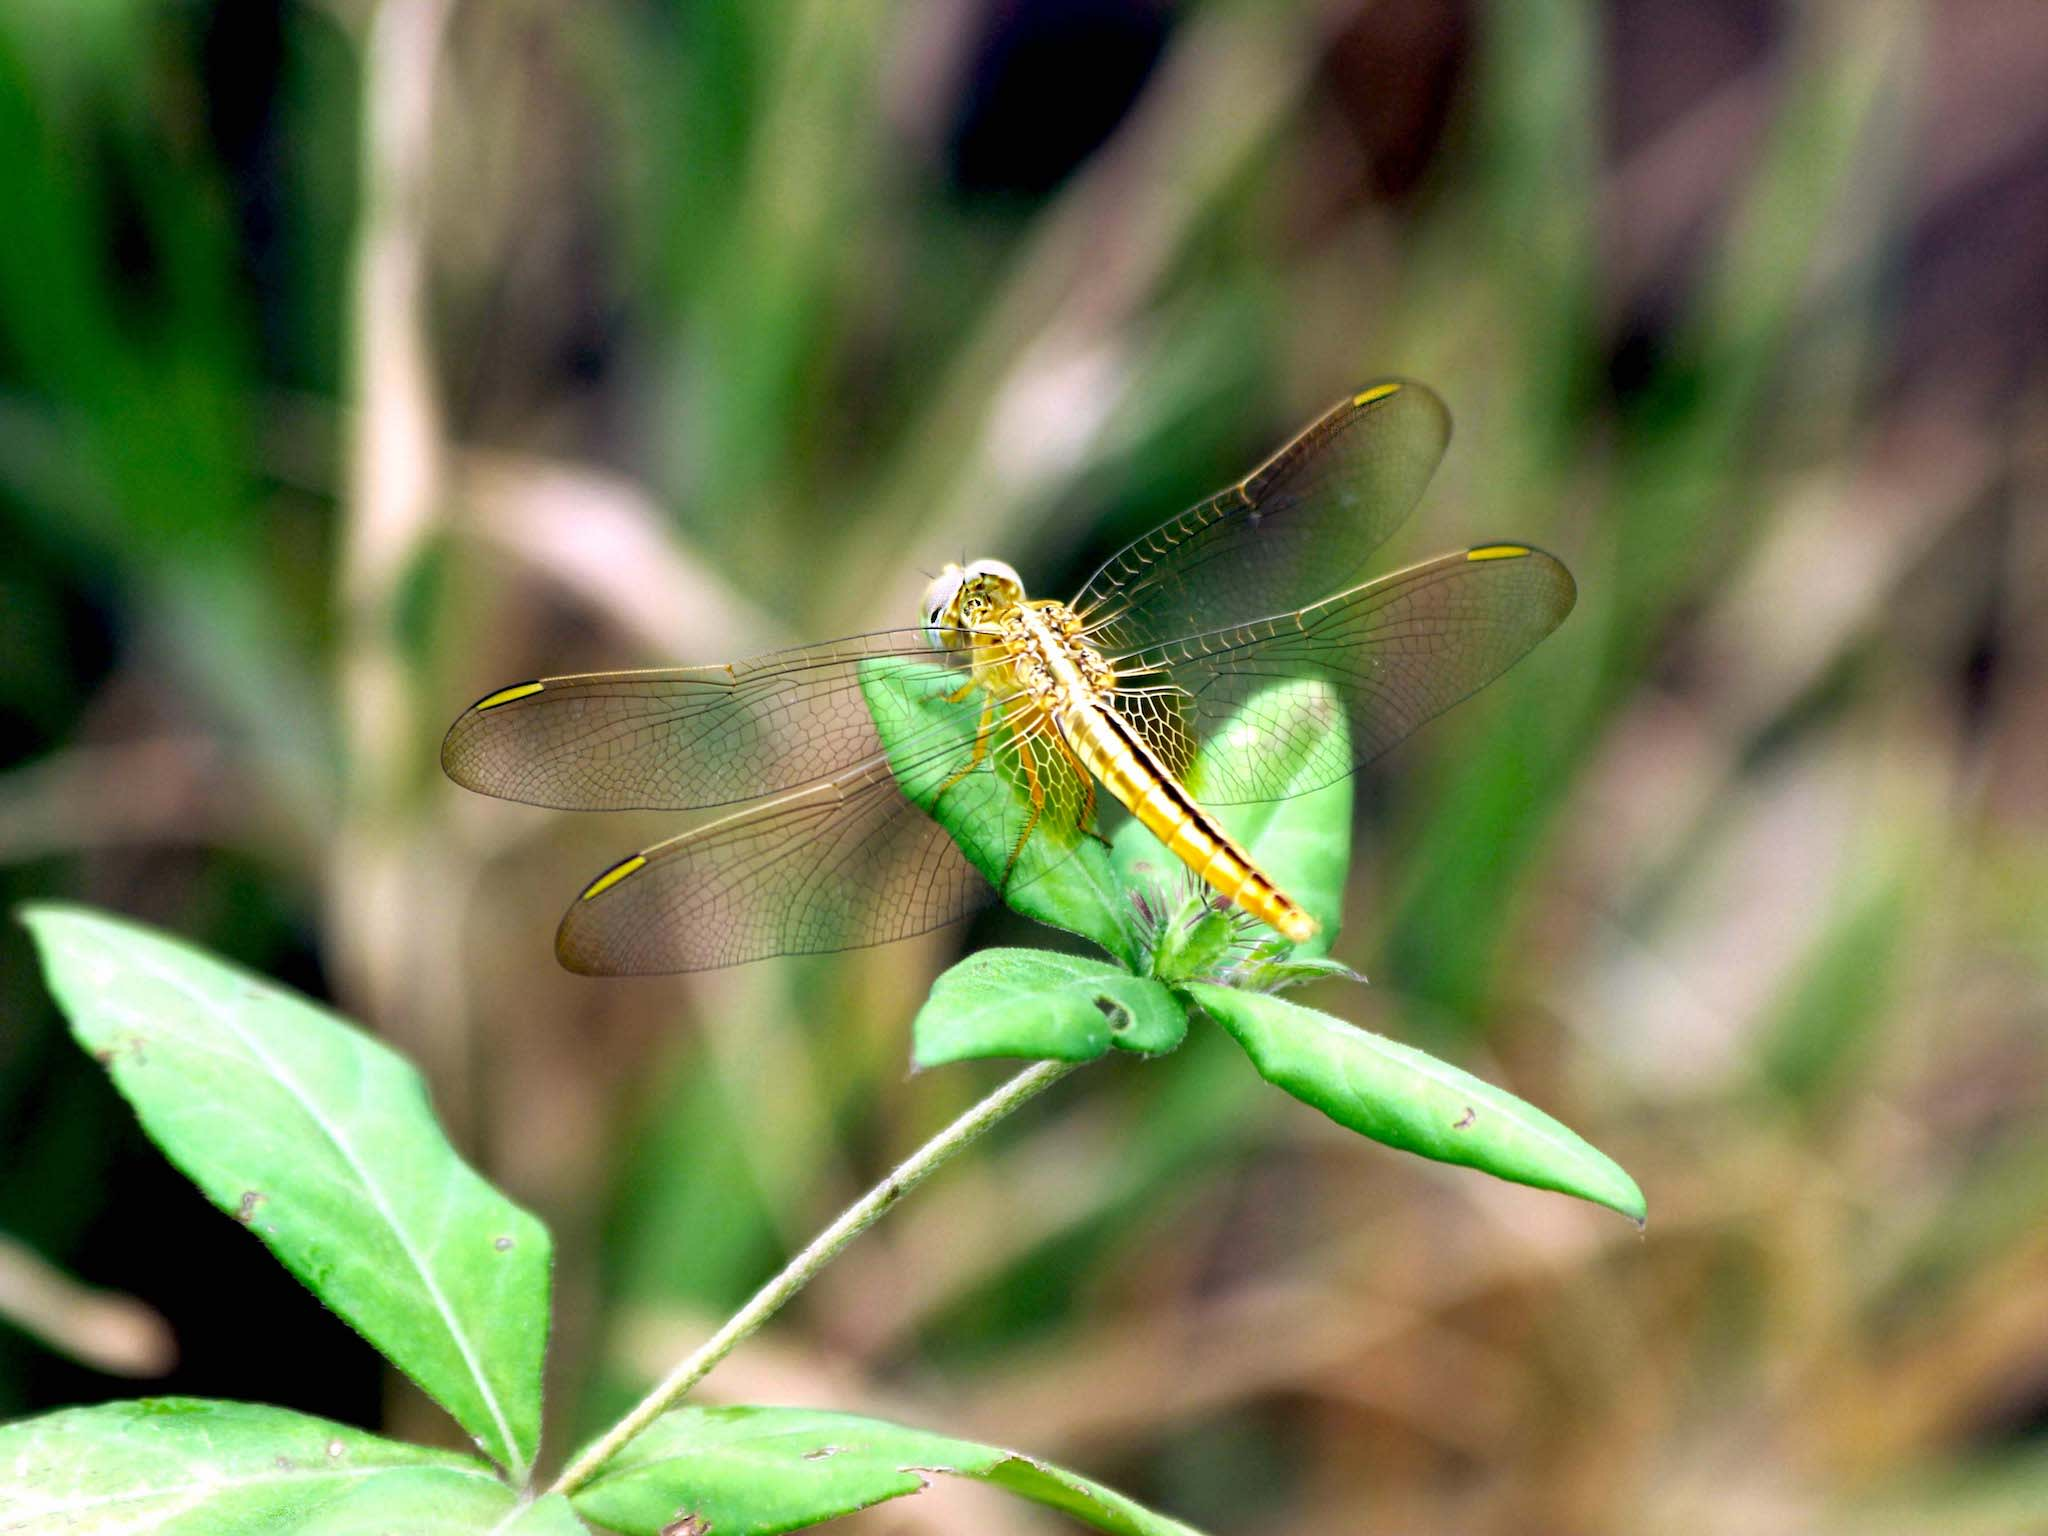 ) A ruddy marsh skimmer dragonfly Crocothemis servilia is often seen close to habitation especially near ponds, ditches and their surroundings